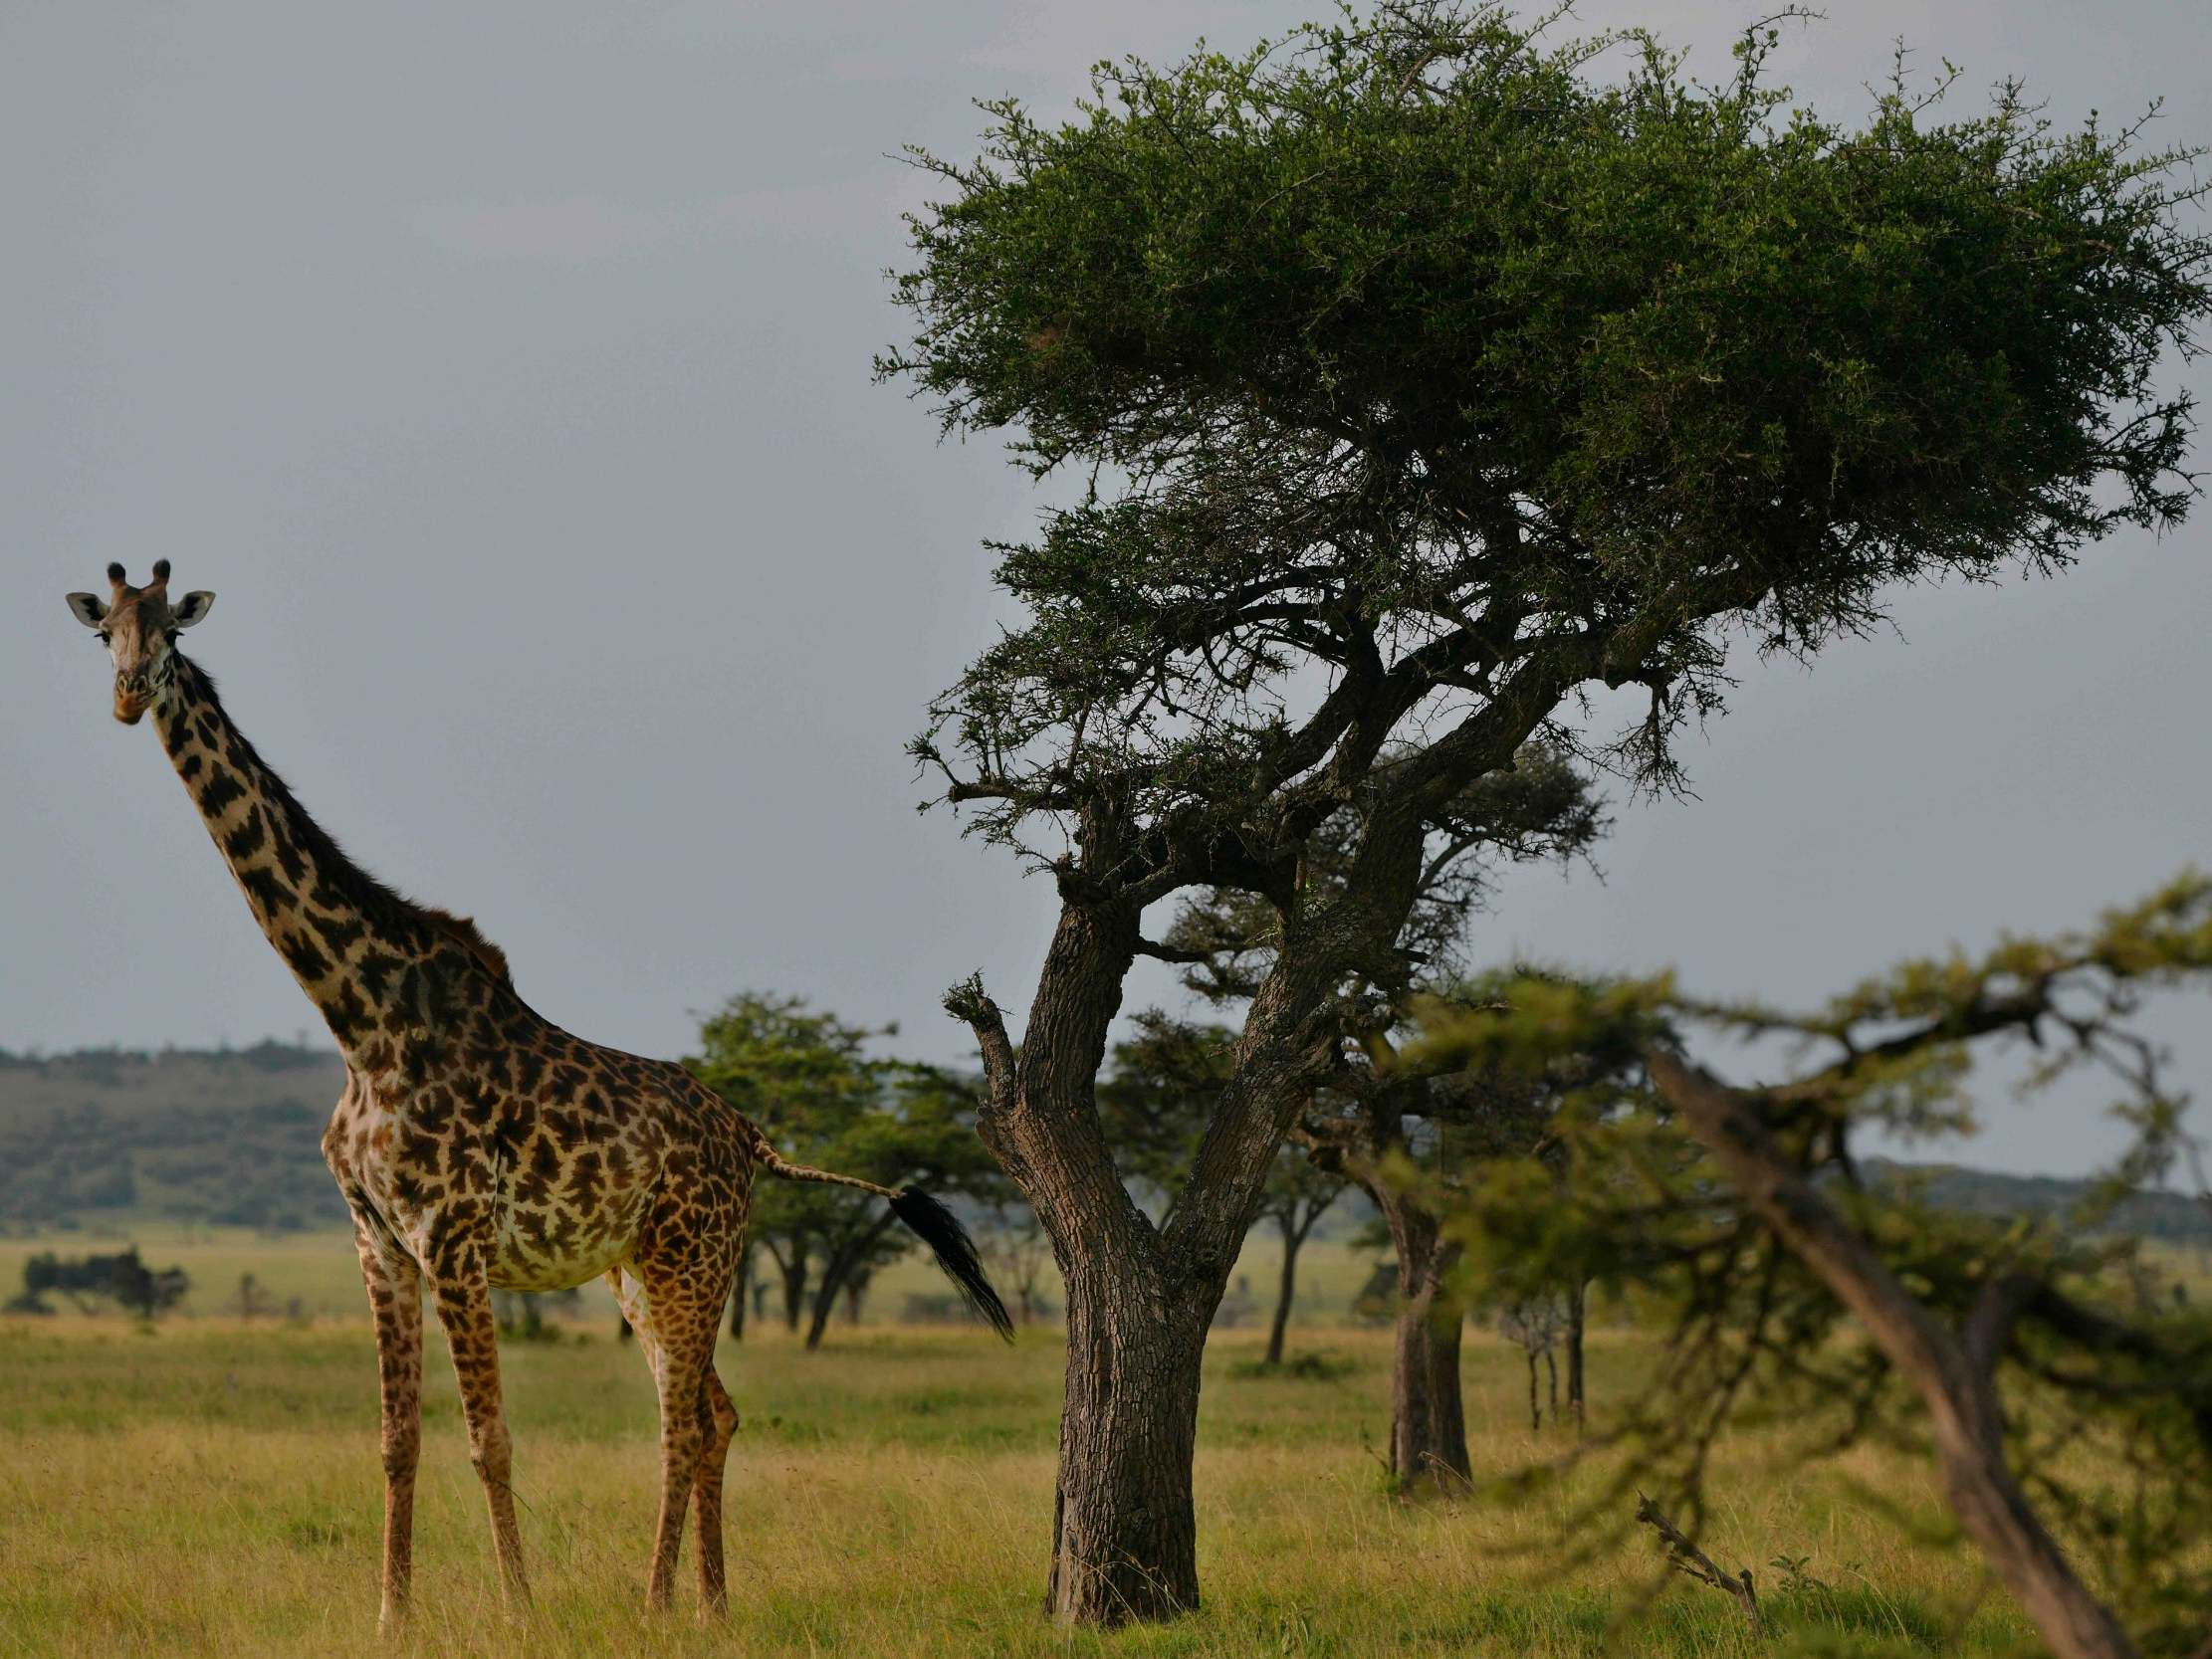 Giraffes are vulnerable to extinction. So why won't America decide on protecting them until 2025?